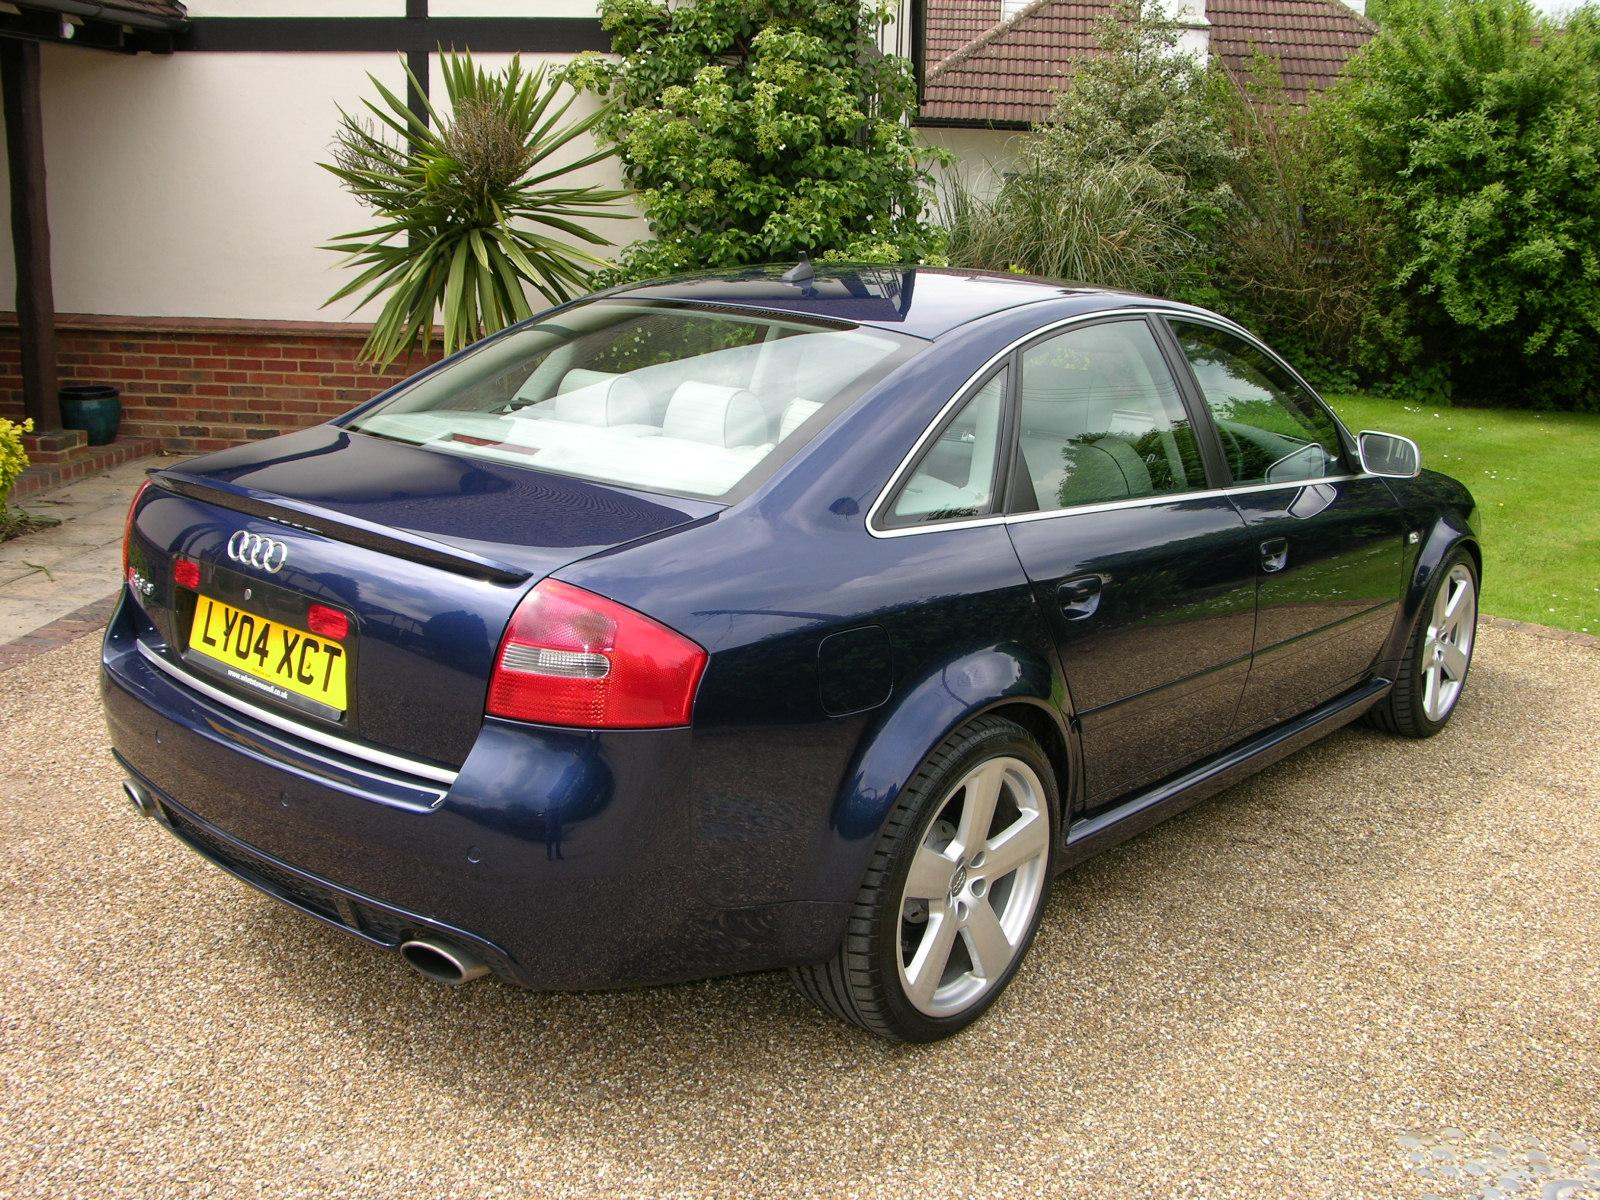 2002 Audi A6 (4b,c5) - pictures, information and specs ...